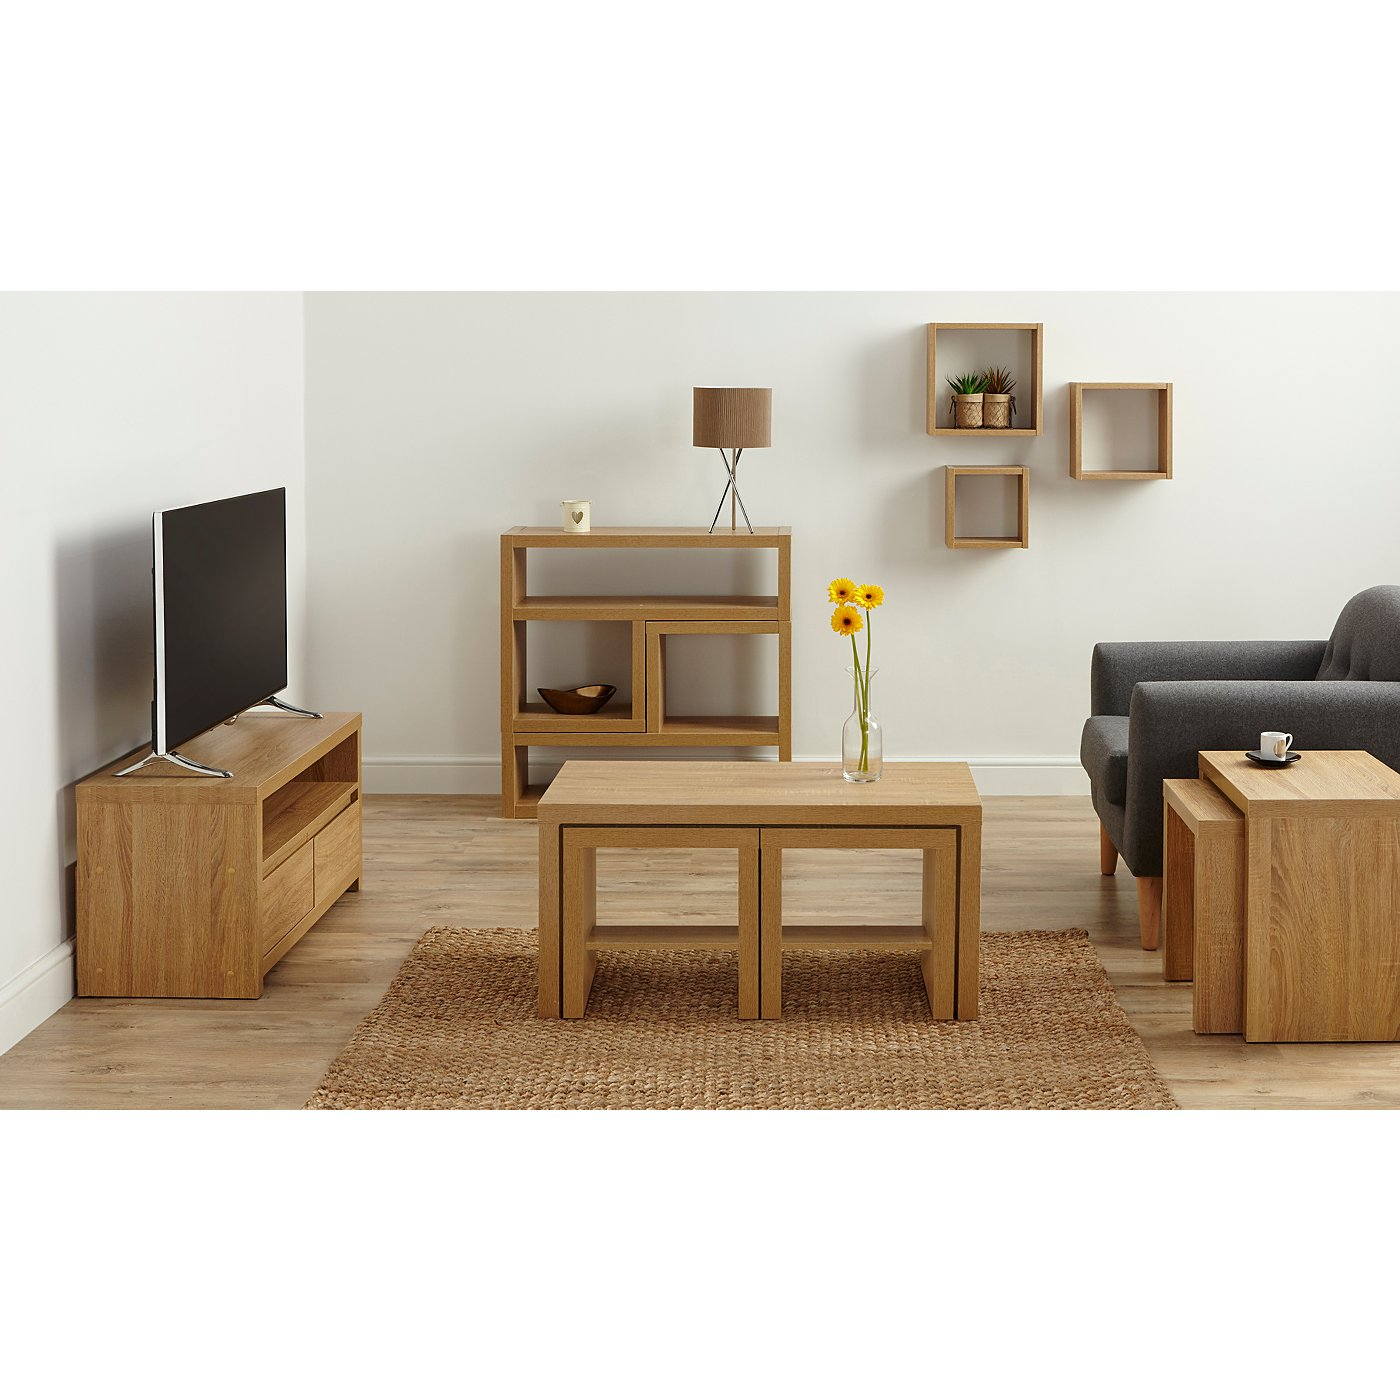 Oak effect living room furniture sets living room for Apartment furniture sets